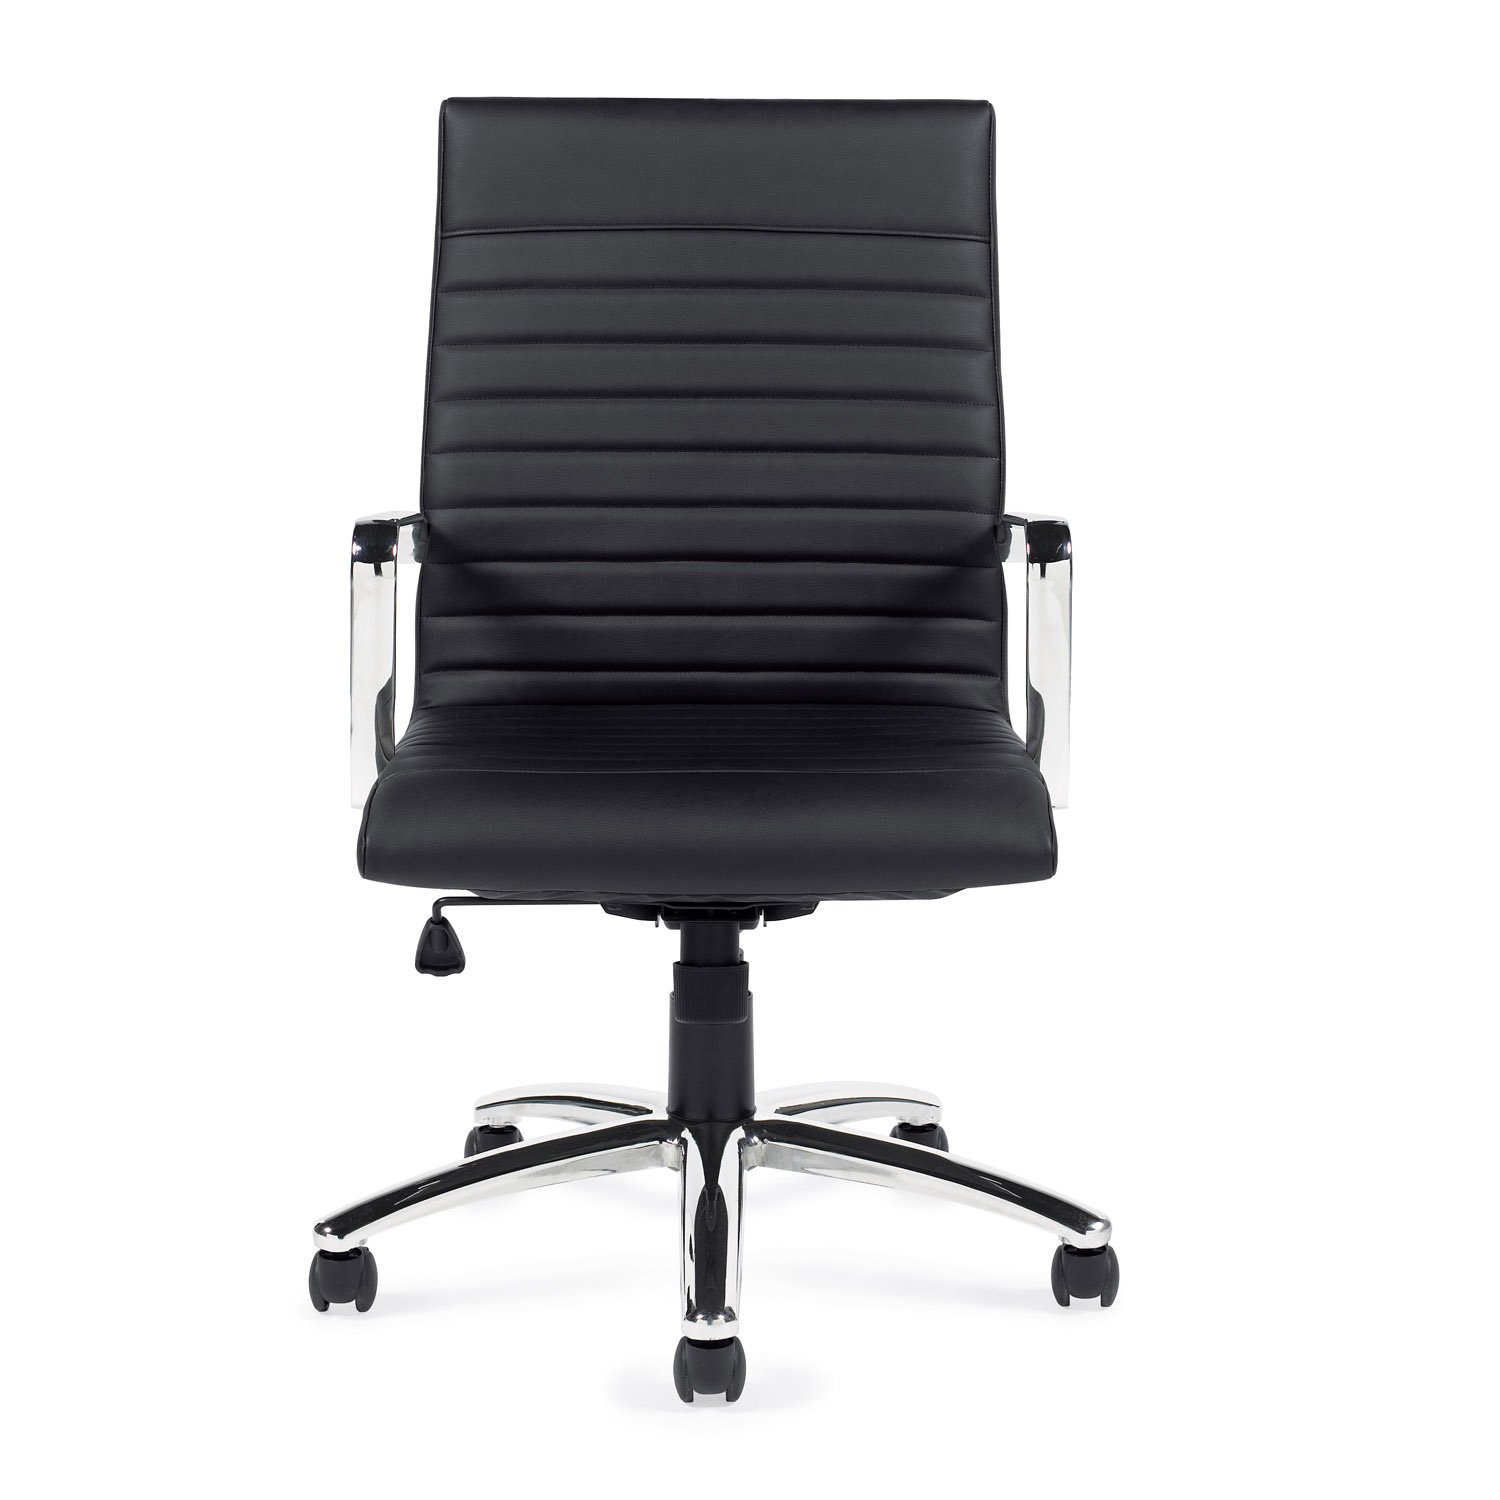 Conference Room Chairs - ''11730B'' Contemporary Office Chairs